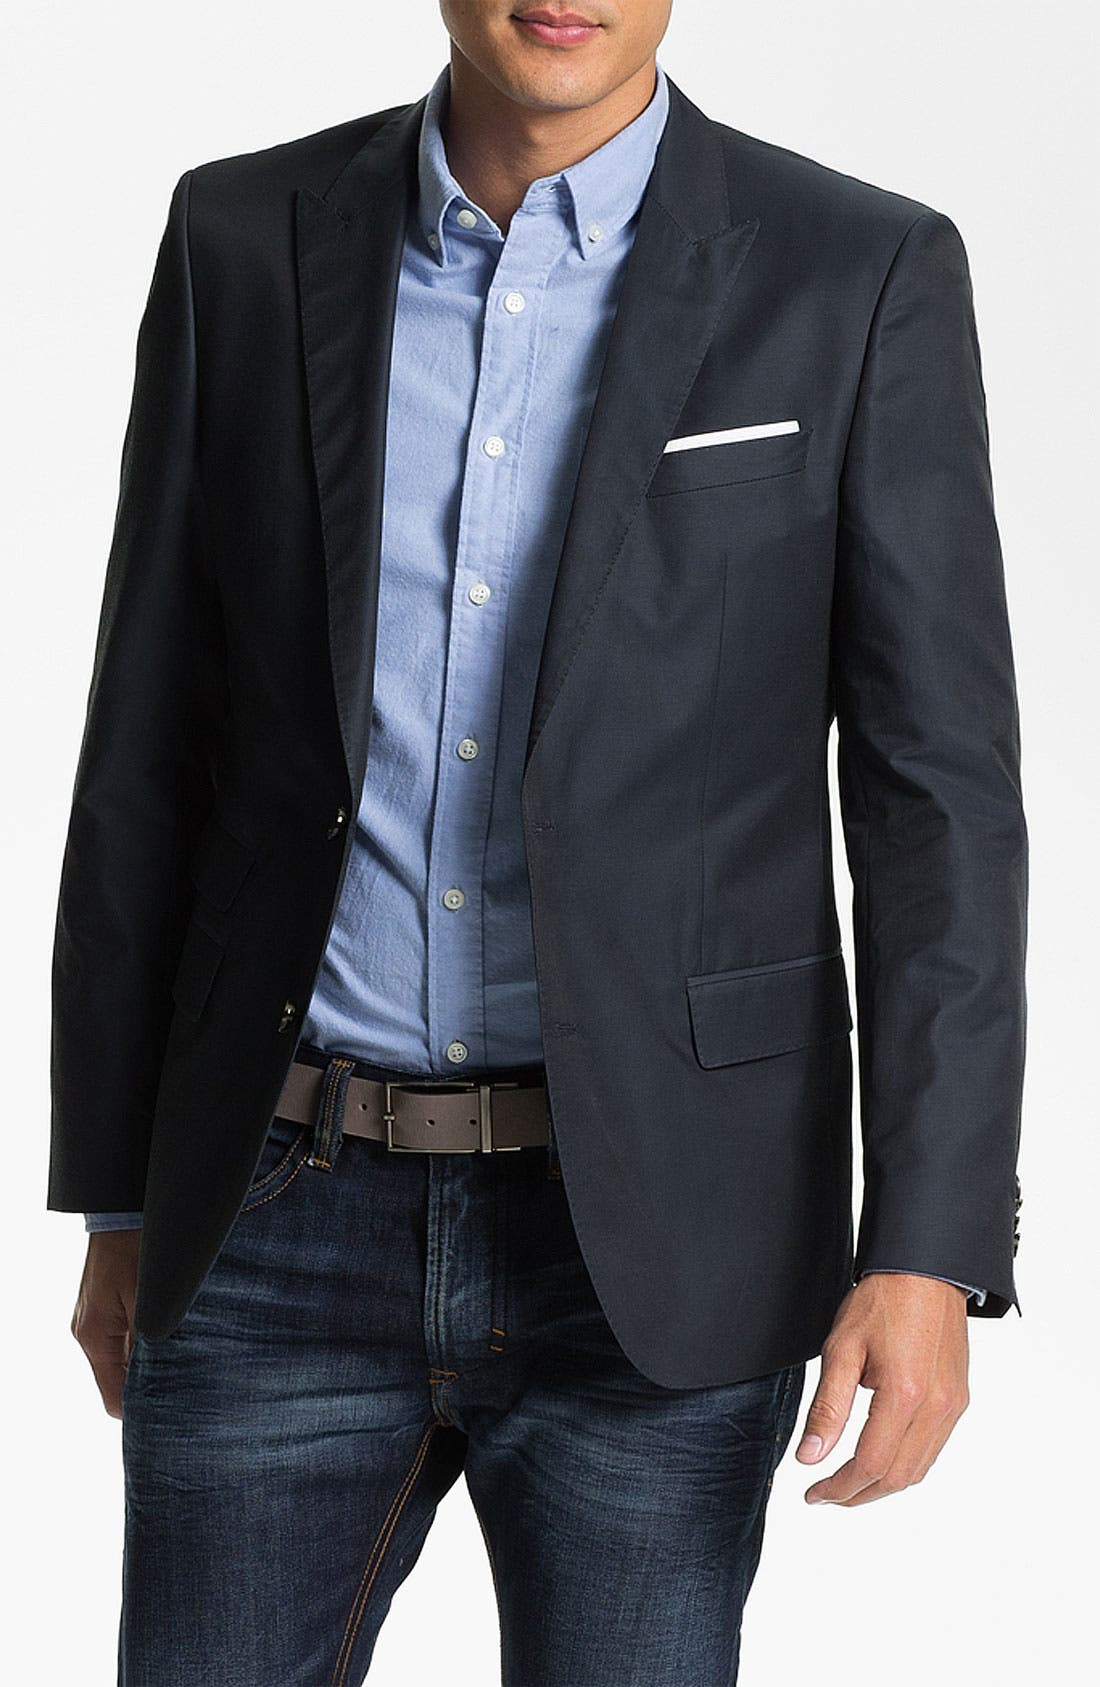 Main Image - BOSS HUGO BOSS 'Hold' Trim Fit Blazer